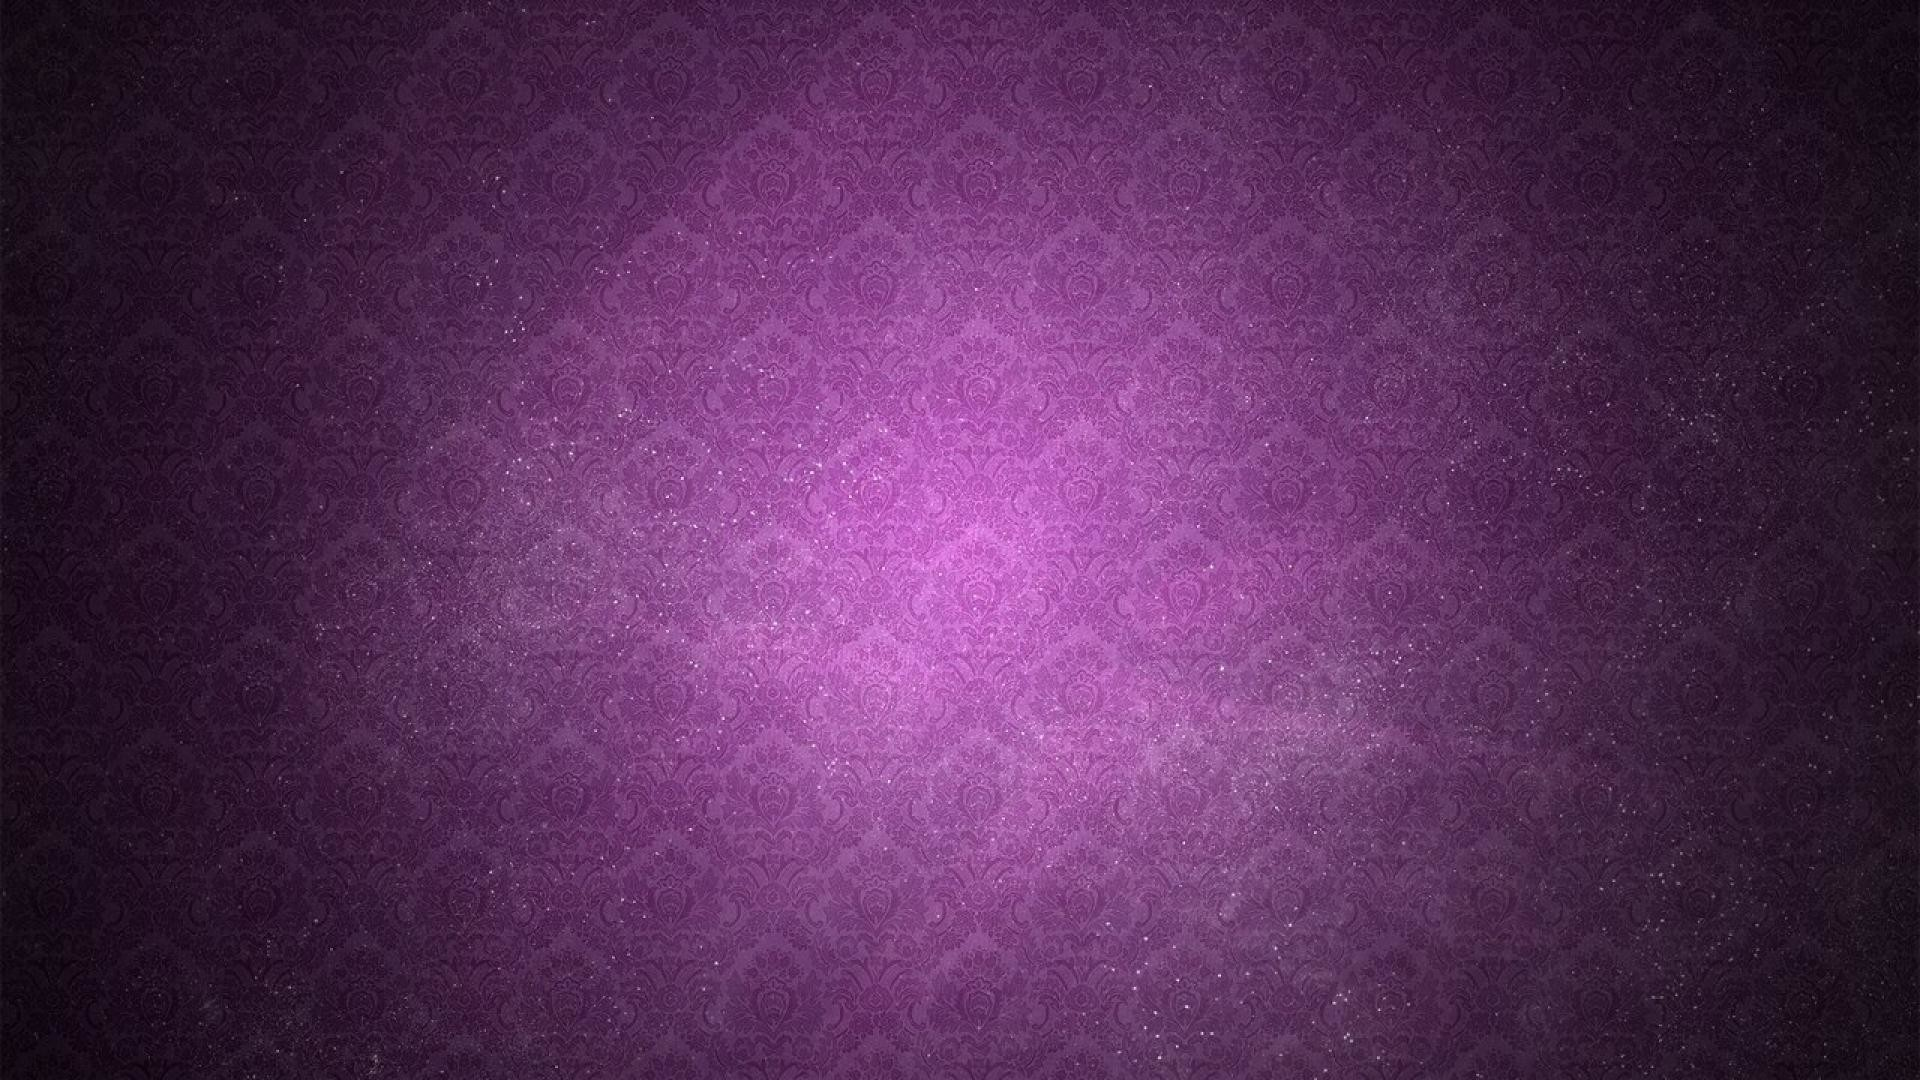 1920x1080 Purple Royal Hd Wallpaper